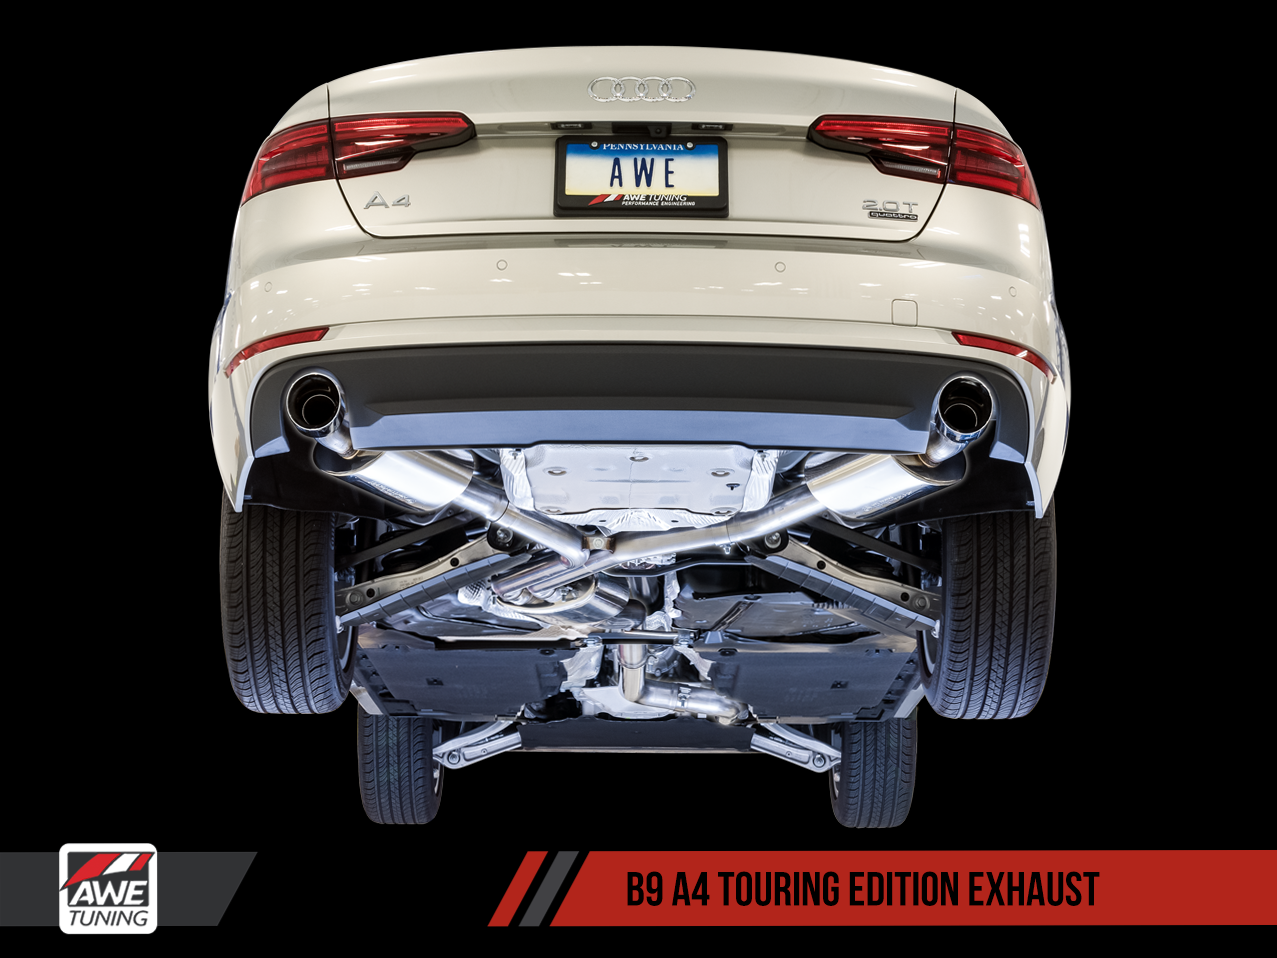 Touring Exhaust, Dual Outlet - Chrome Silver Tips For AWE Tuning B9 A4